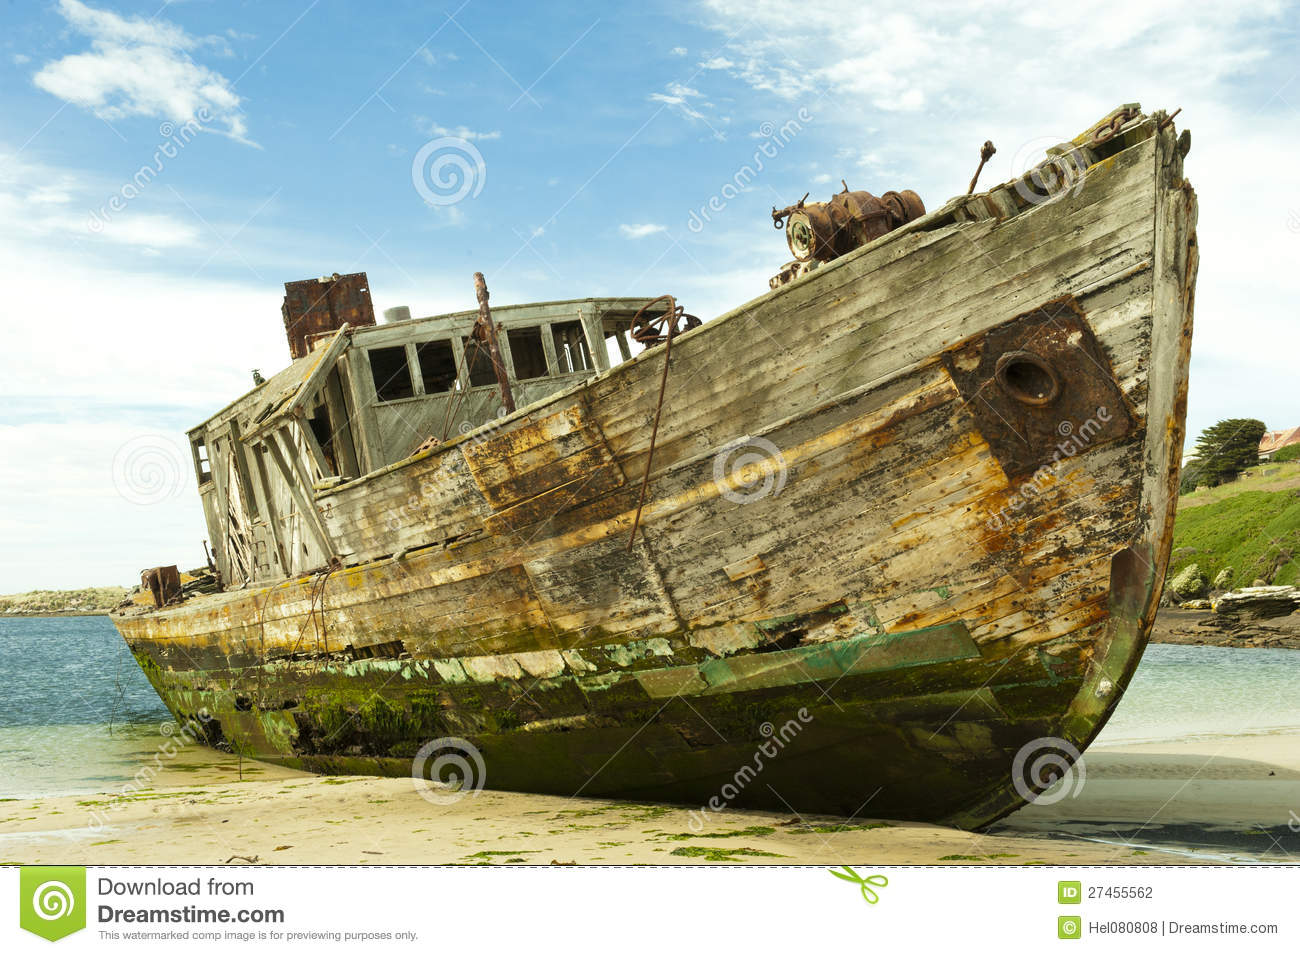 Shipwreck Of An Old Wooden Ship Stock Photography - Image: 27455562